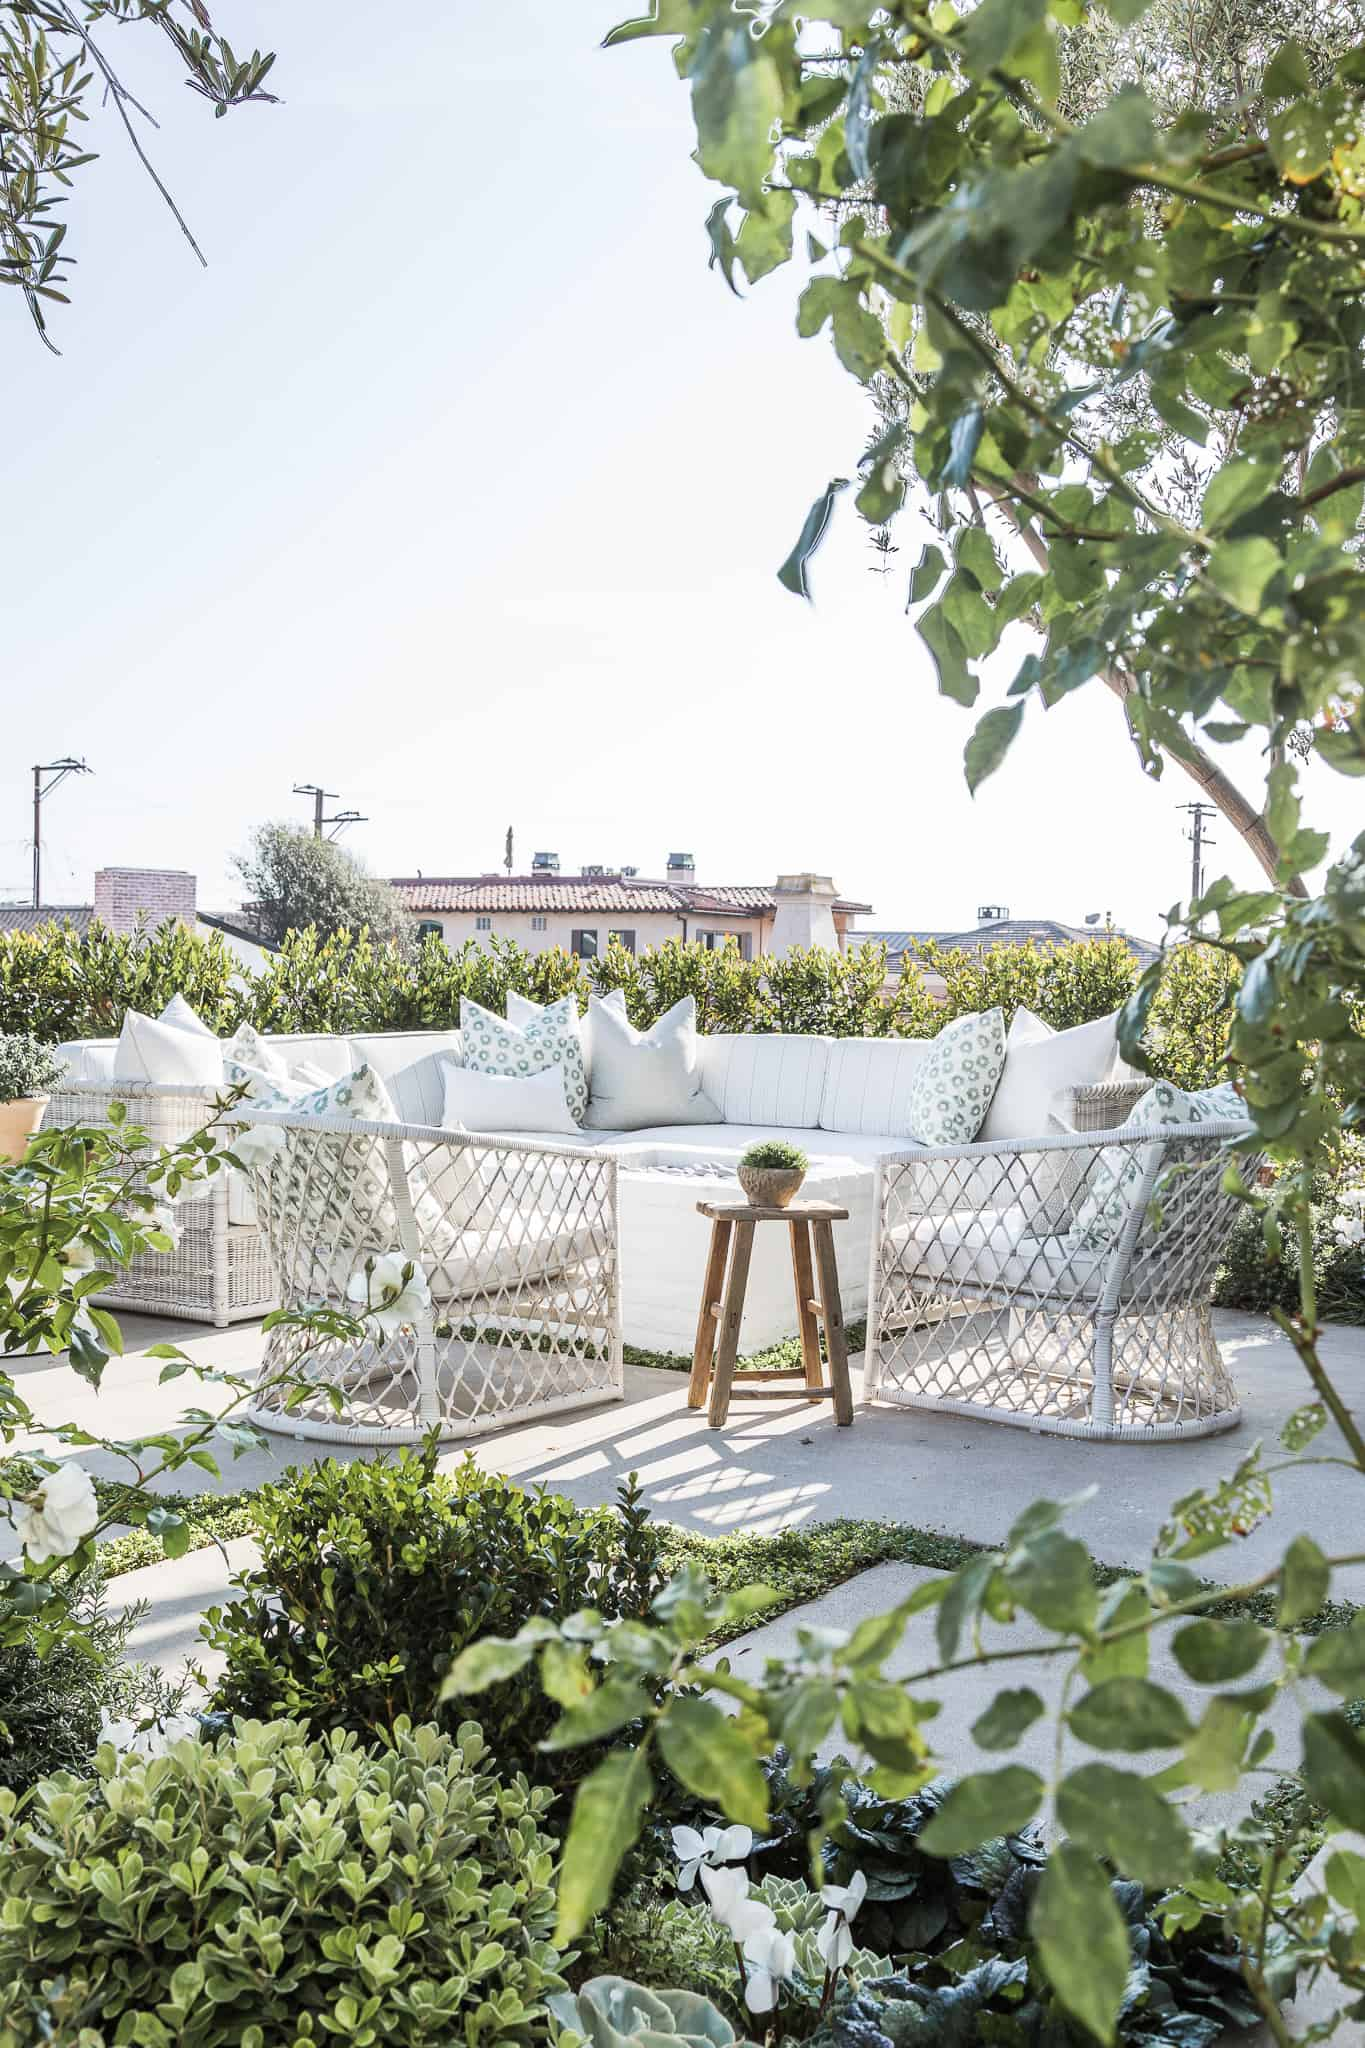 Serena & Lily Outdoor Sectional & Chairs - Marigold Project Image